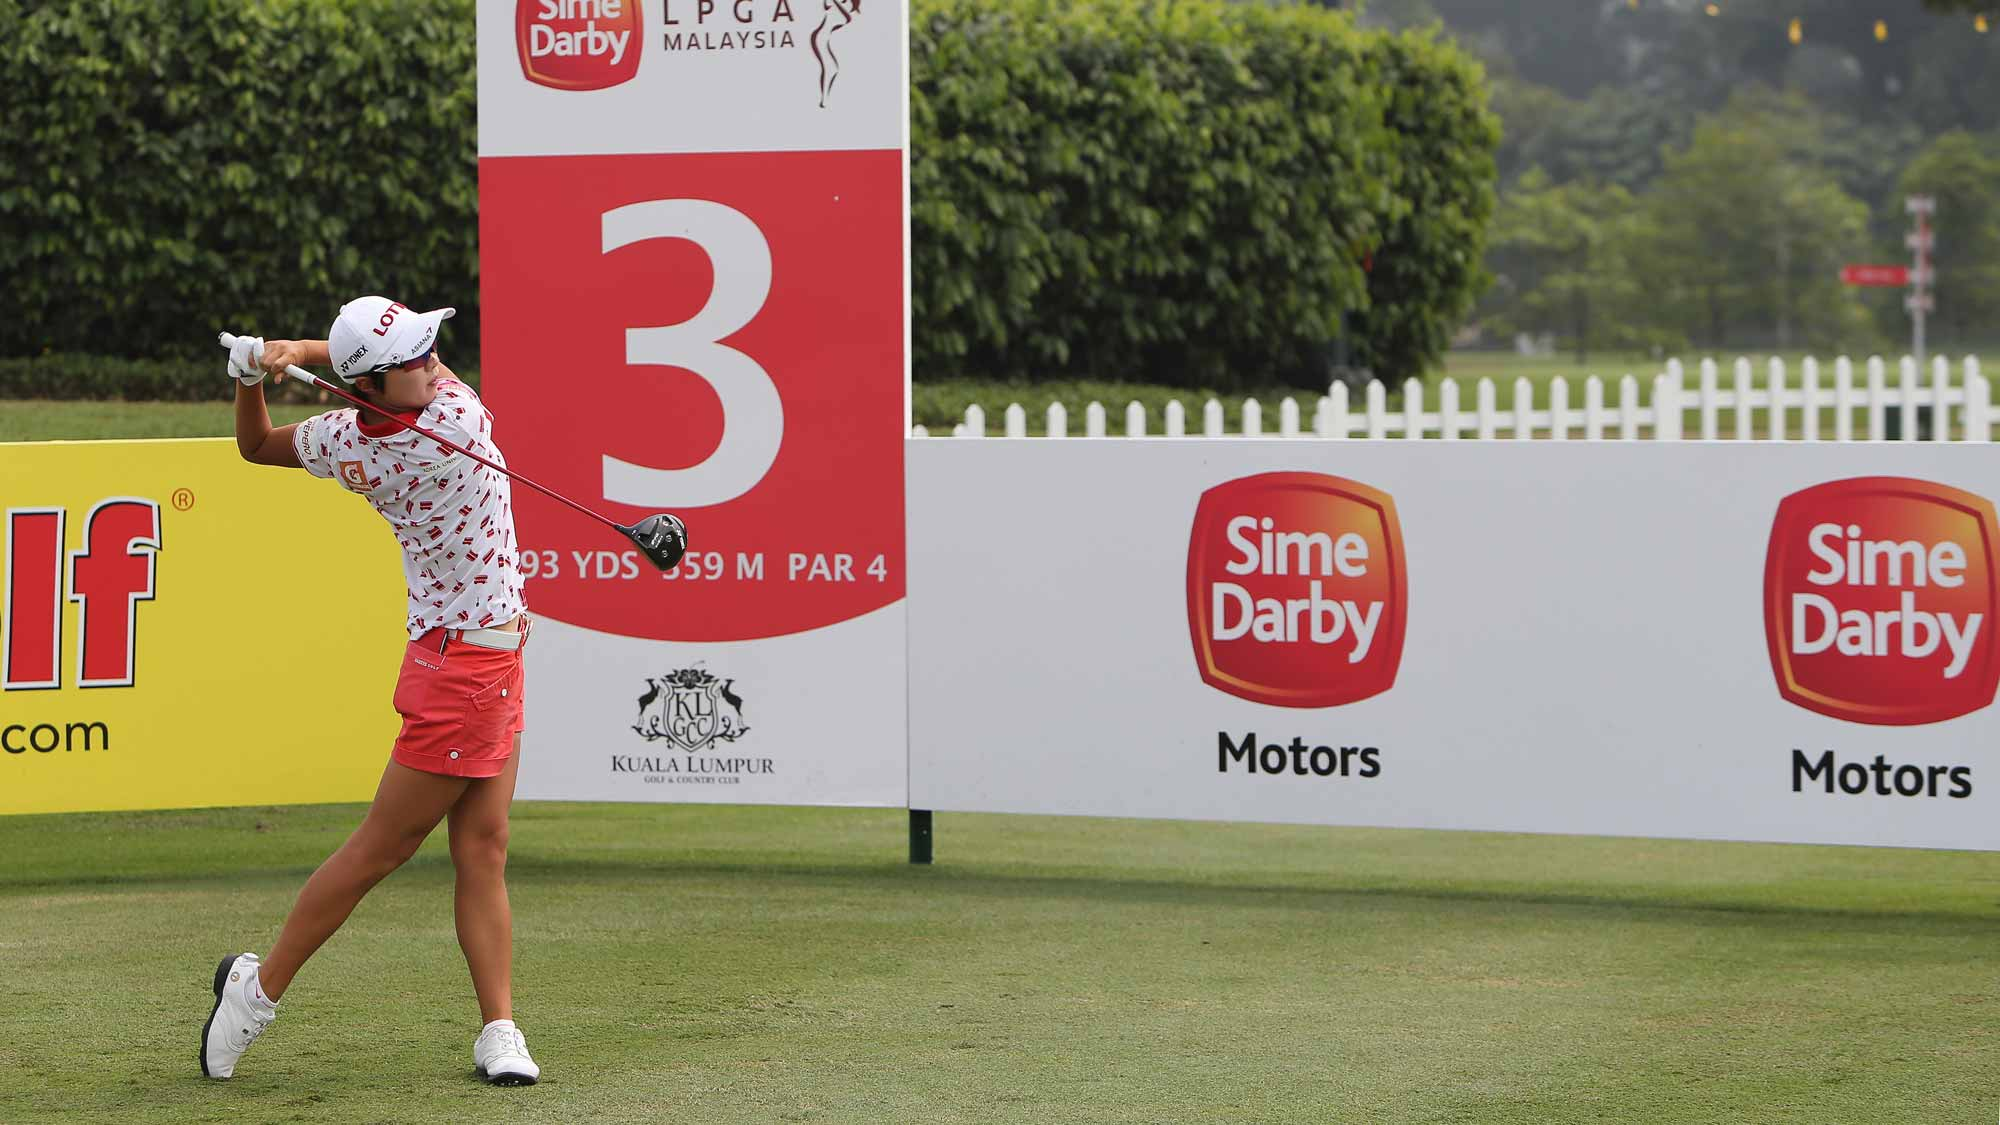 Hyo Joo Kim During her practice round at the 2015 Sime Darby LPGA Malaysia Event